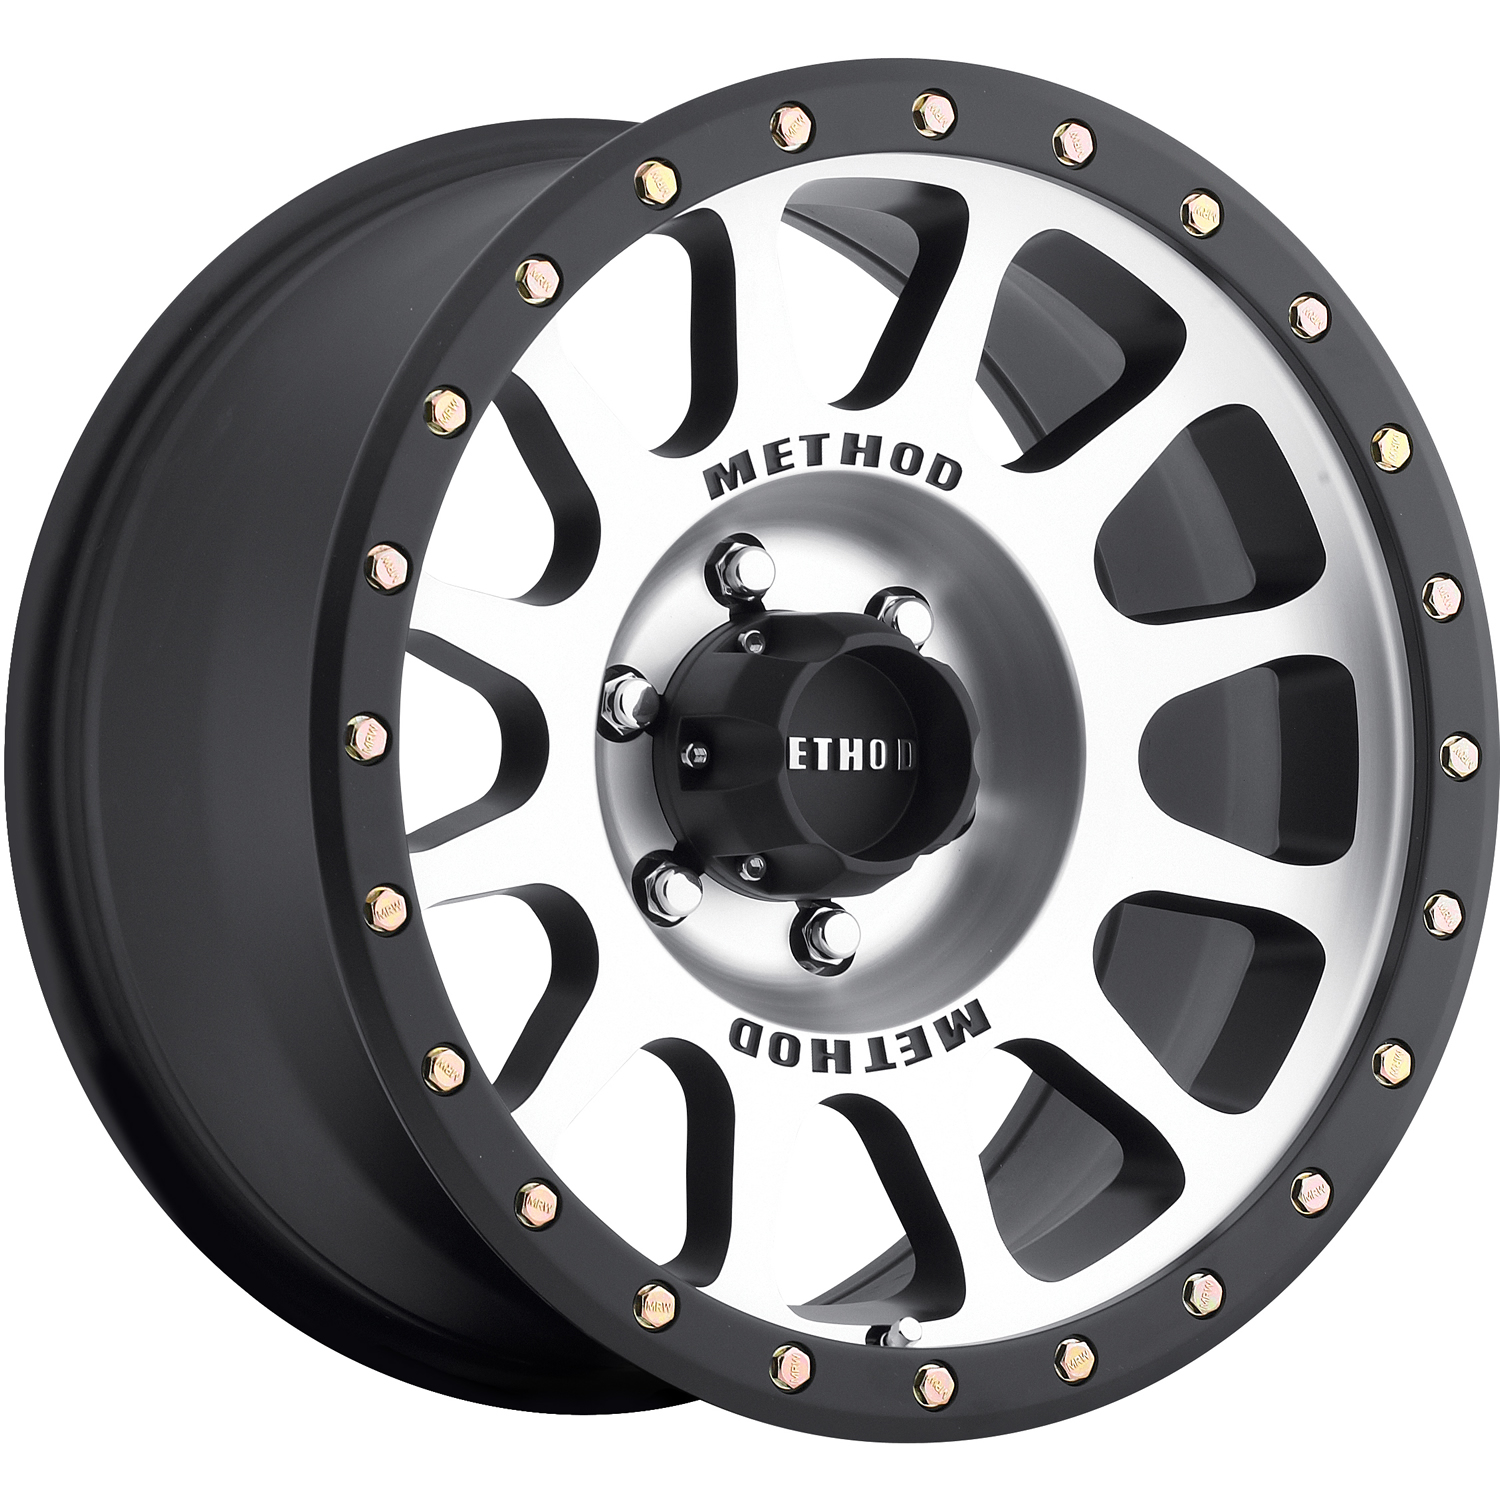 Method Nv 17x8.5 0